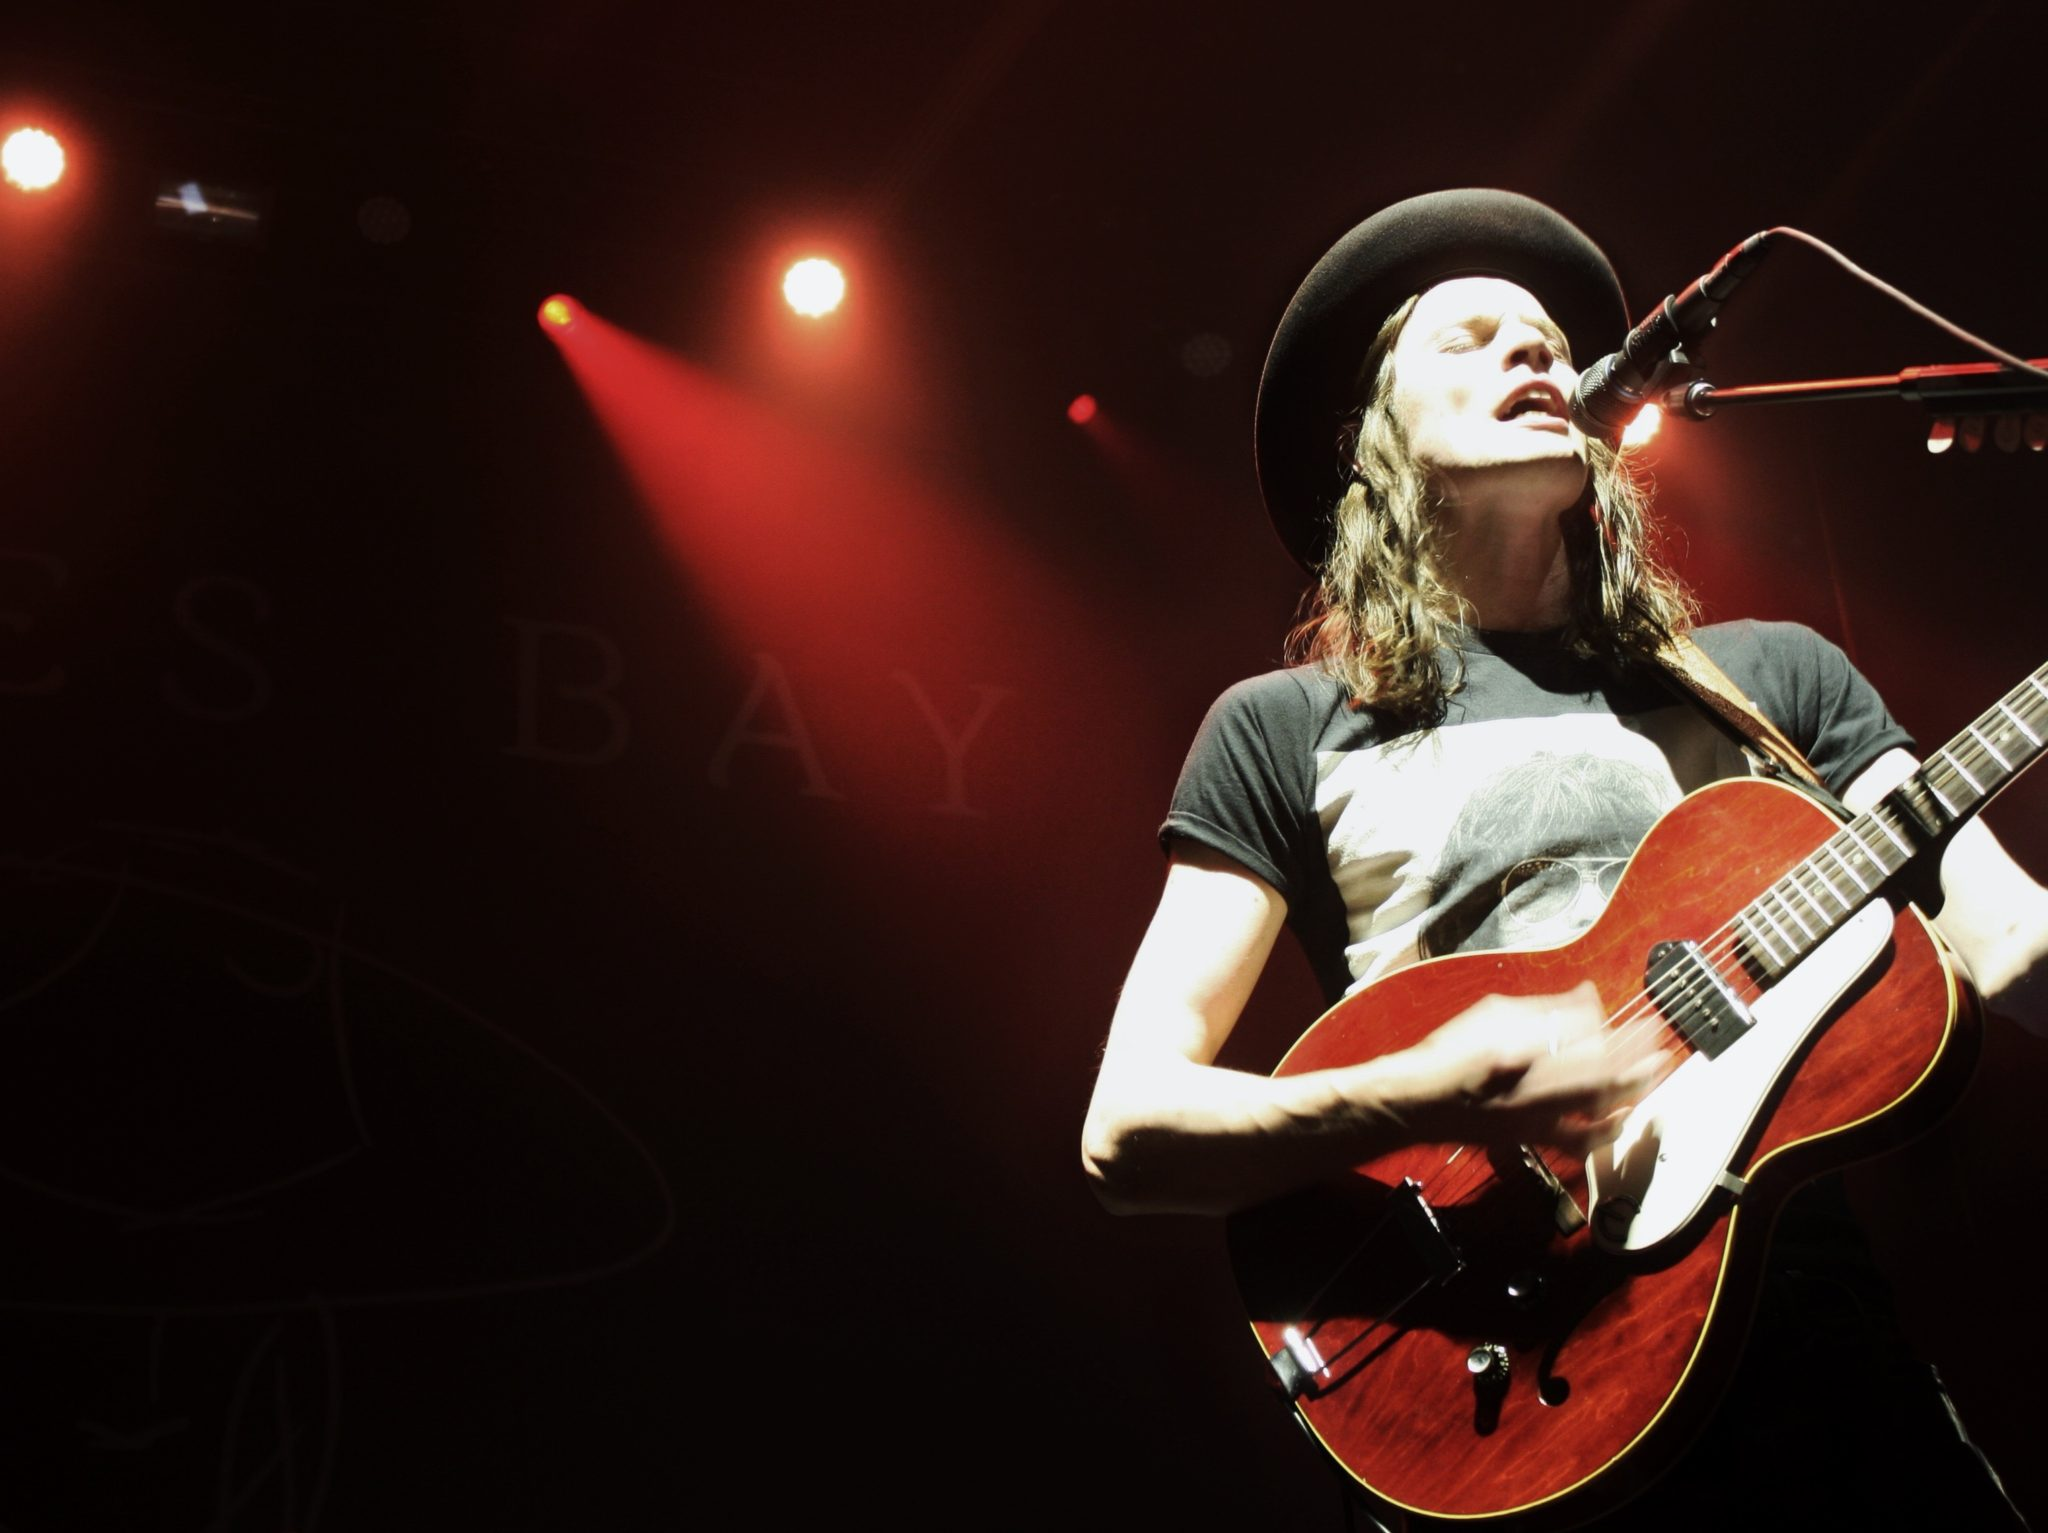 james bay, concert, music photography, new york concert, musician, emerging artist, chaos and the calm, british music, music, guitar, singer, songwriter, republic records, indie pop, indie folk, guitarist,